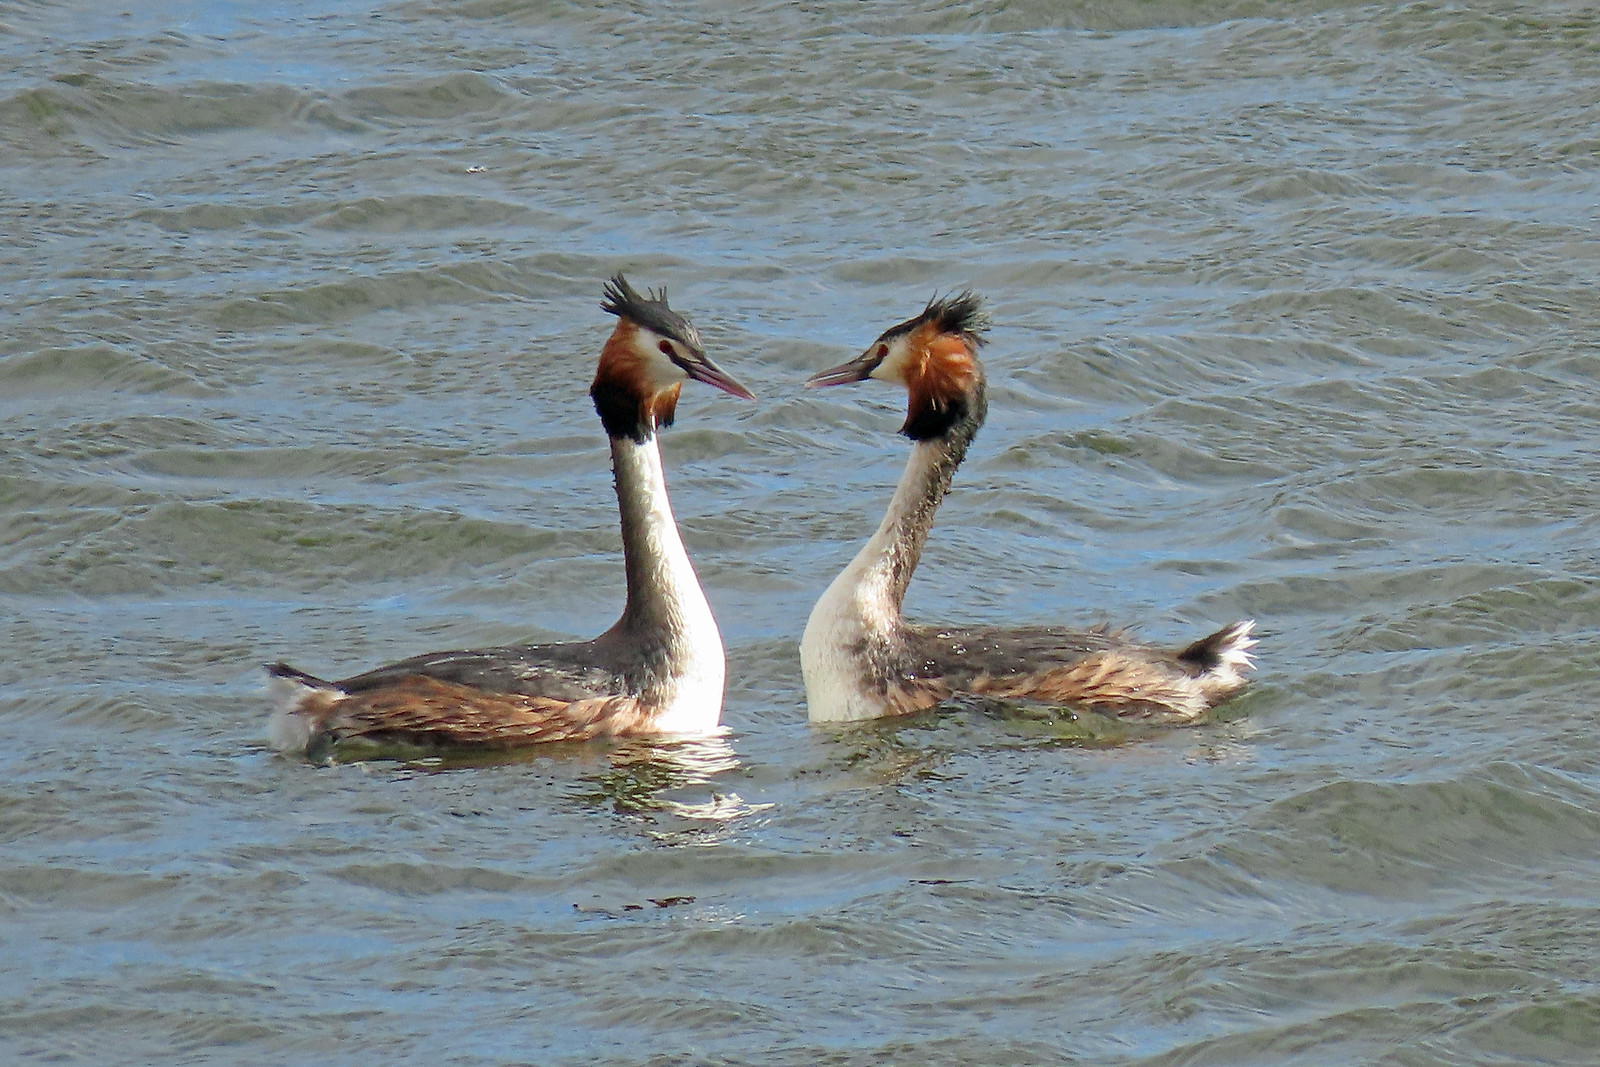 Great Crested Grebe - Podiceps cristatus